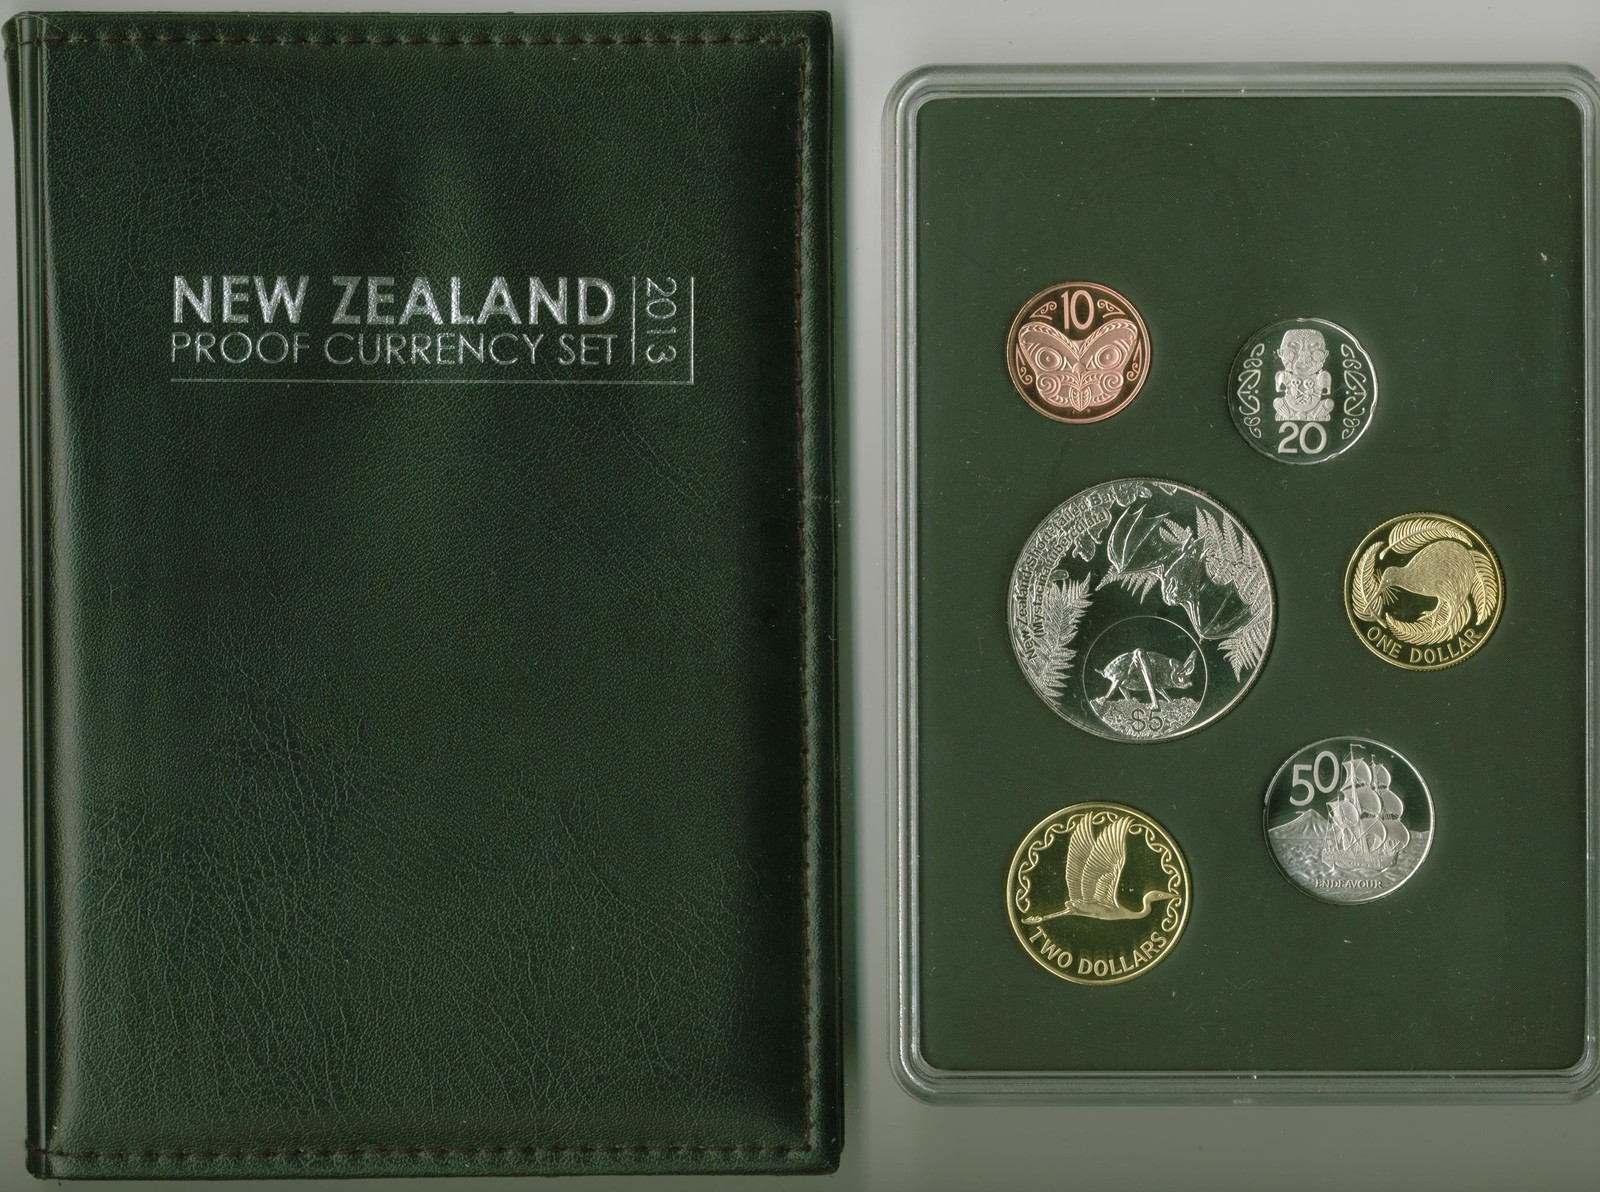 2013 New Zealand Proof Set